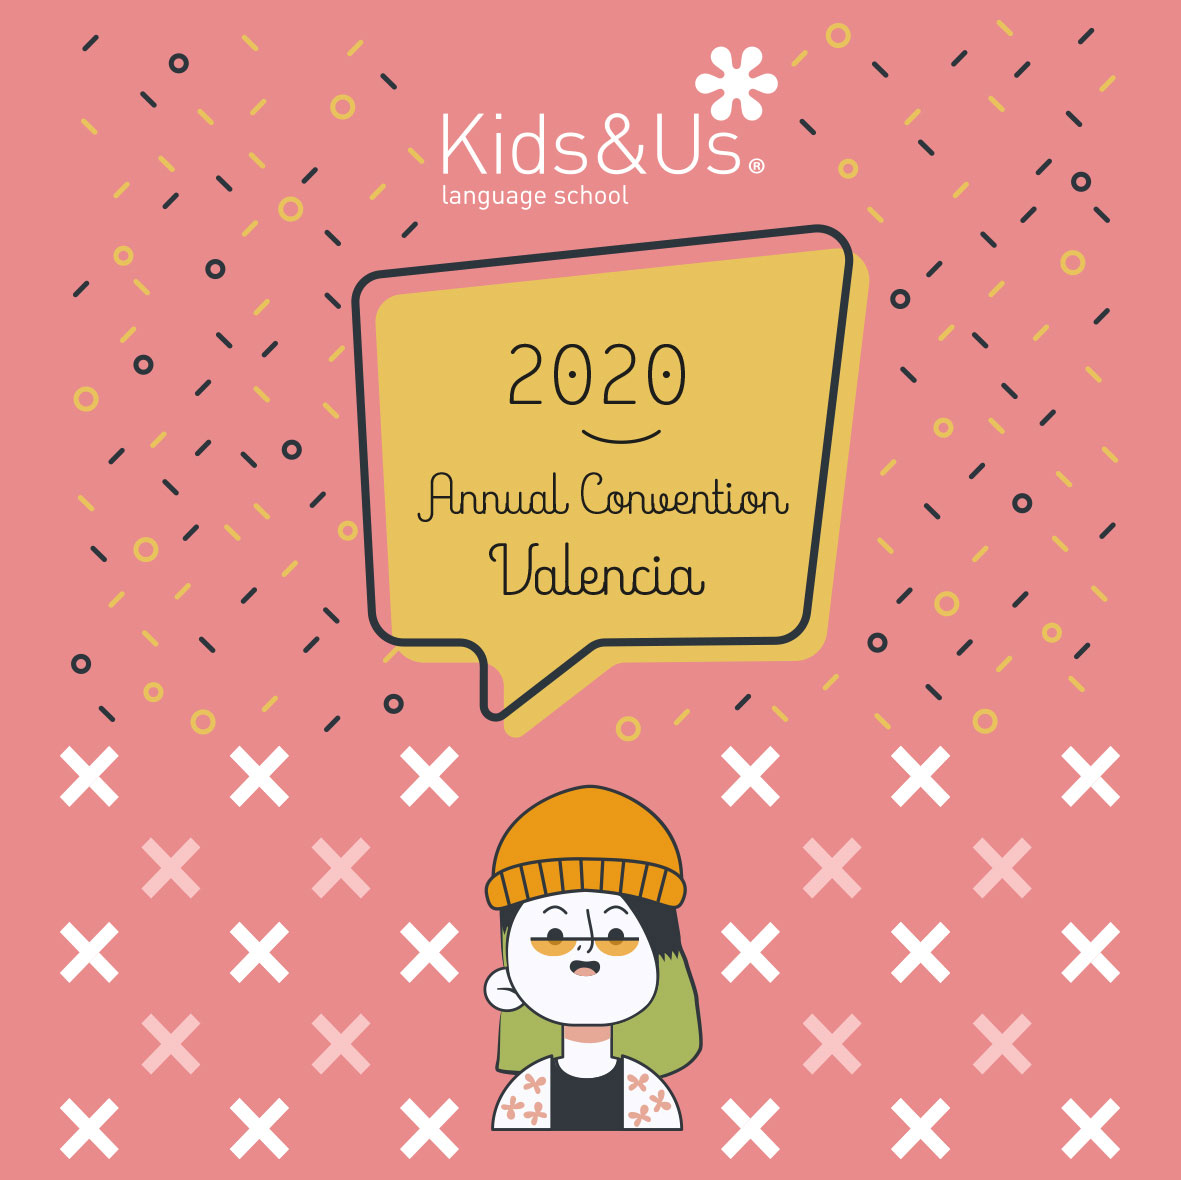 Valencia will host the next edition of the Kids&Us Annual Convention